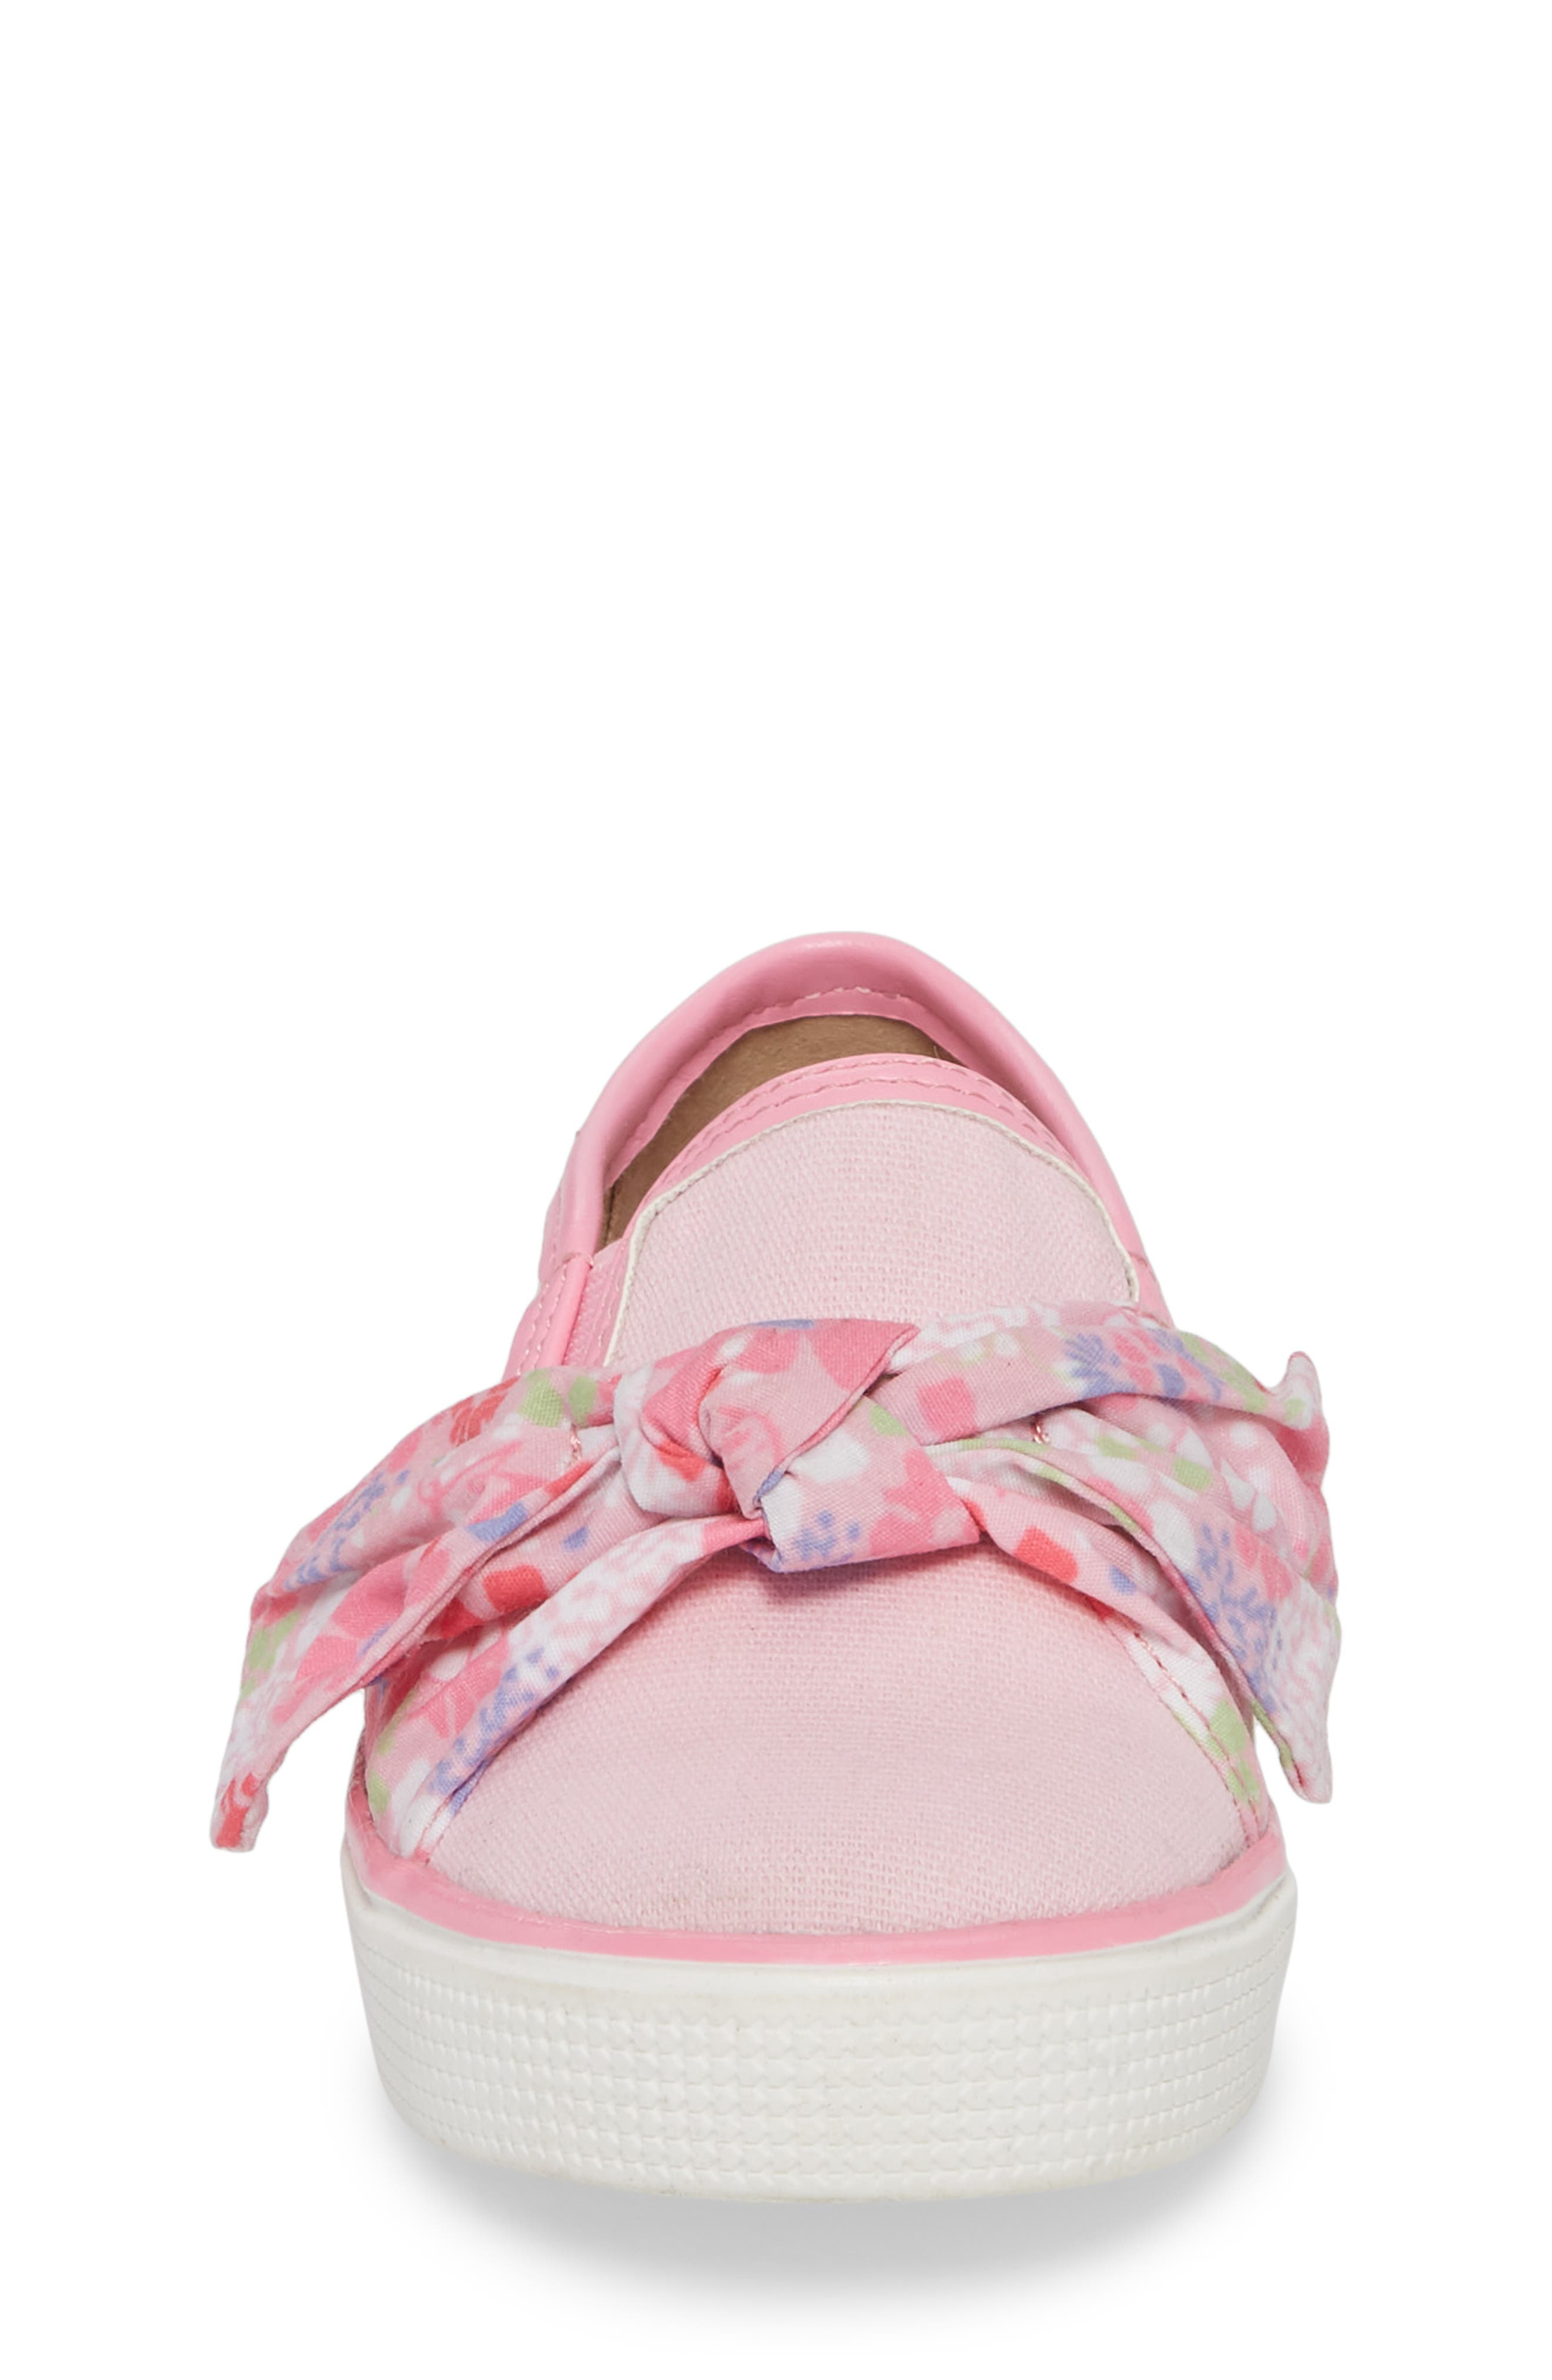 Ashlyn Bow Slip-On Sneaker,                             Alternate thumbnail 8, color,                             Orchid Pink